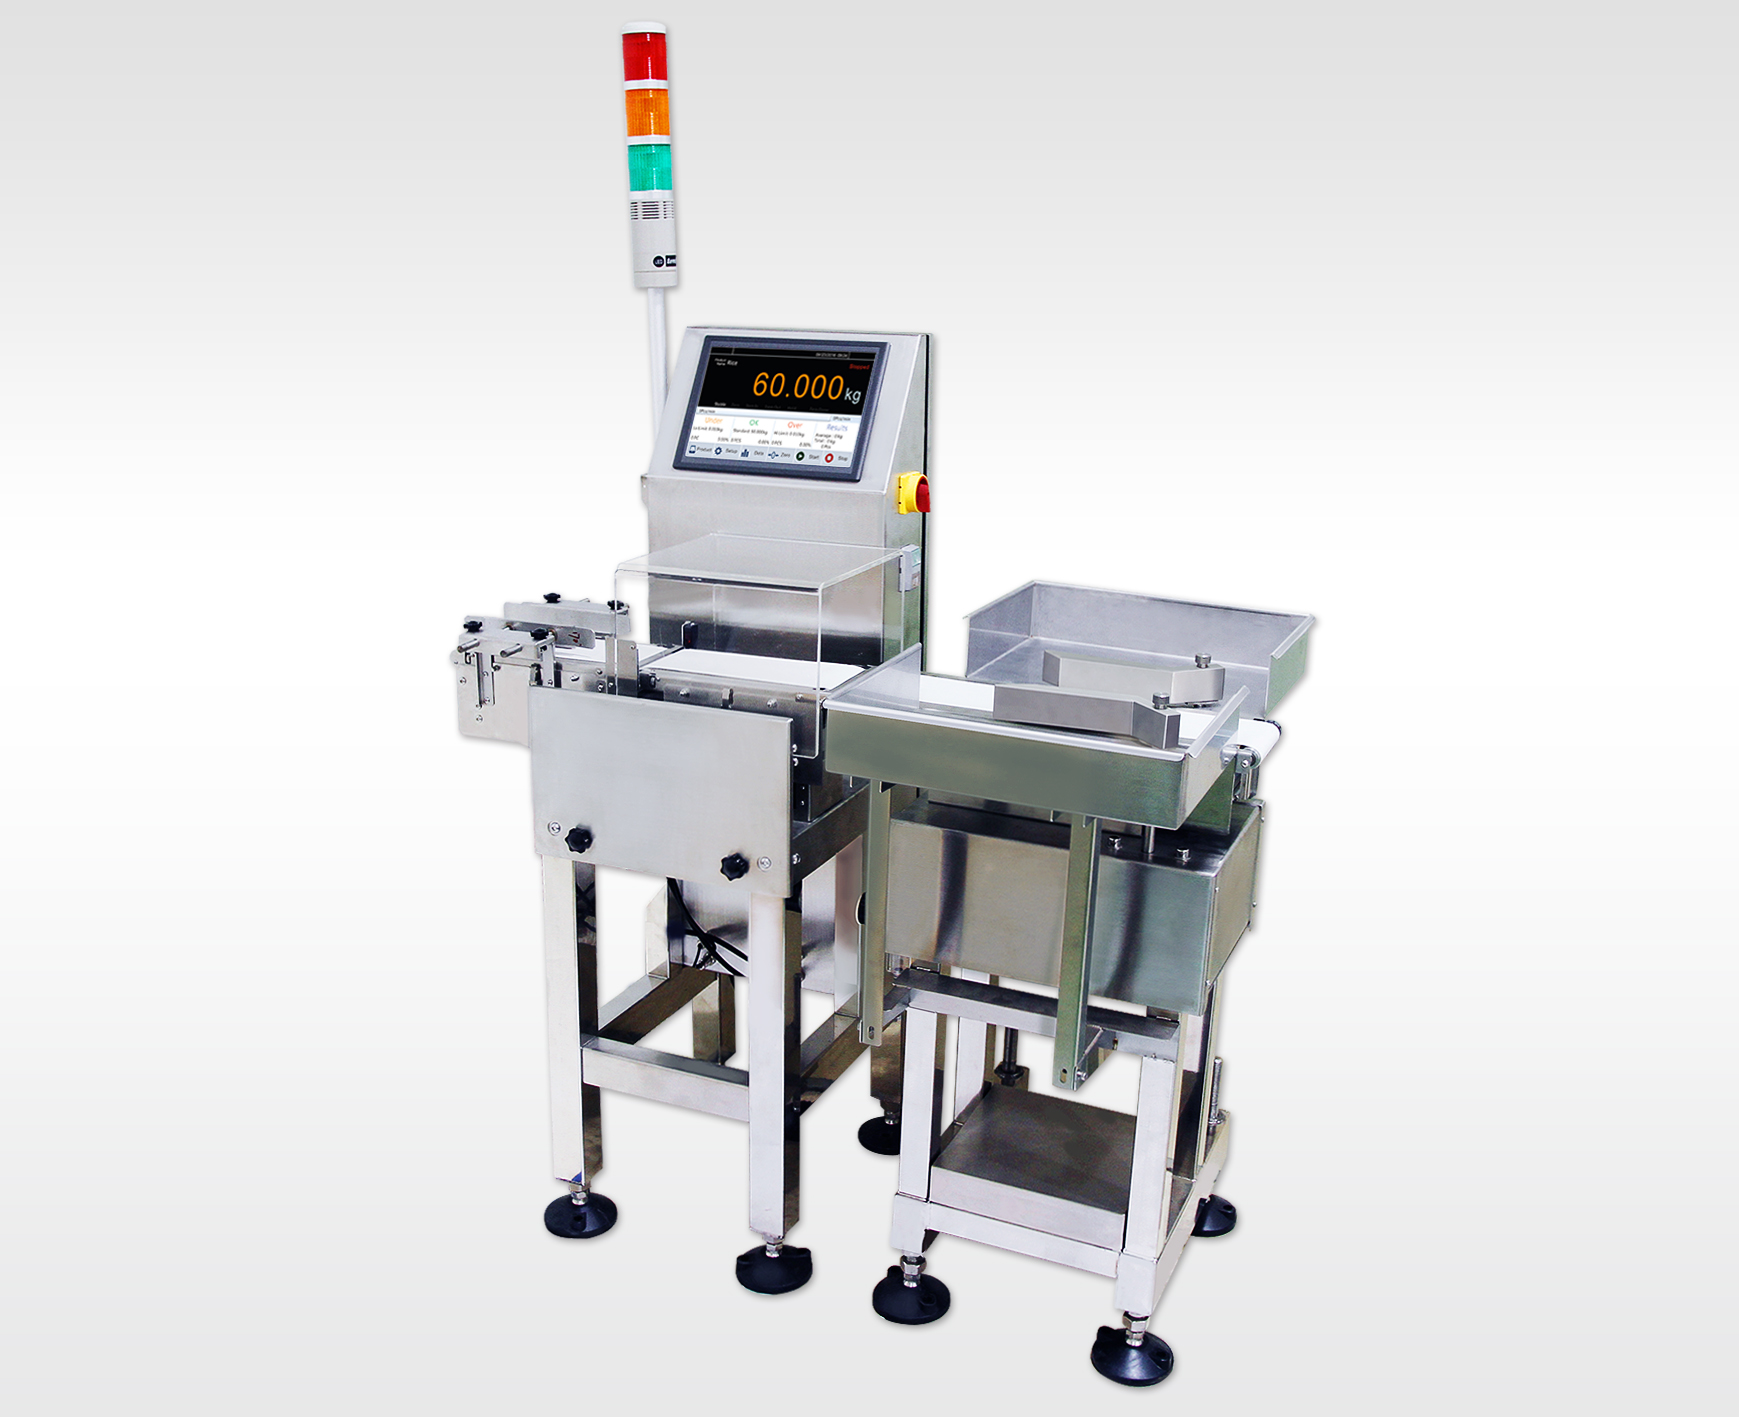 General Measure Checkweigher C101A-100G